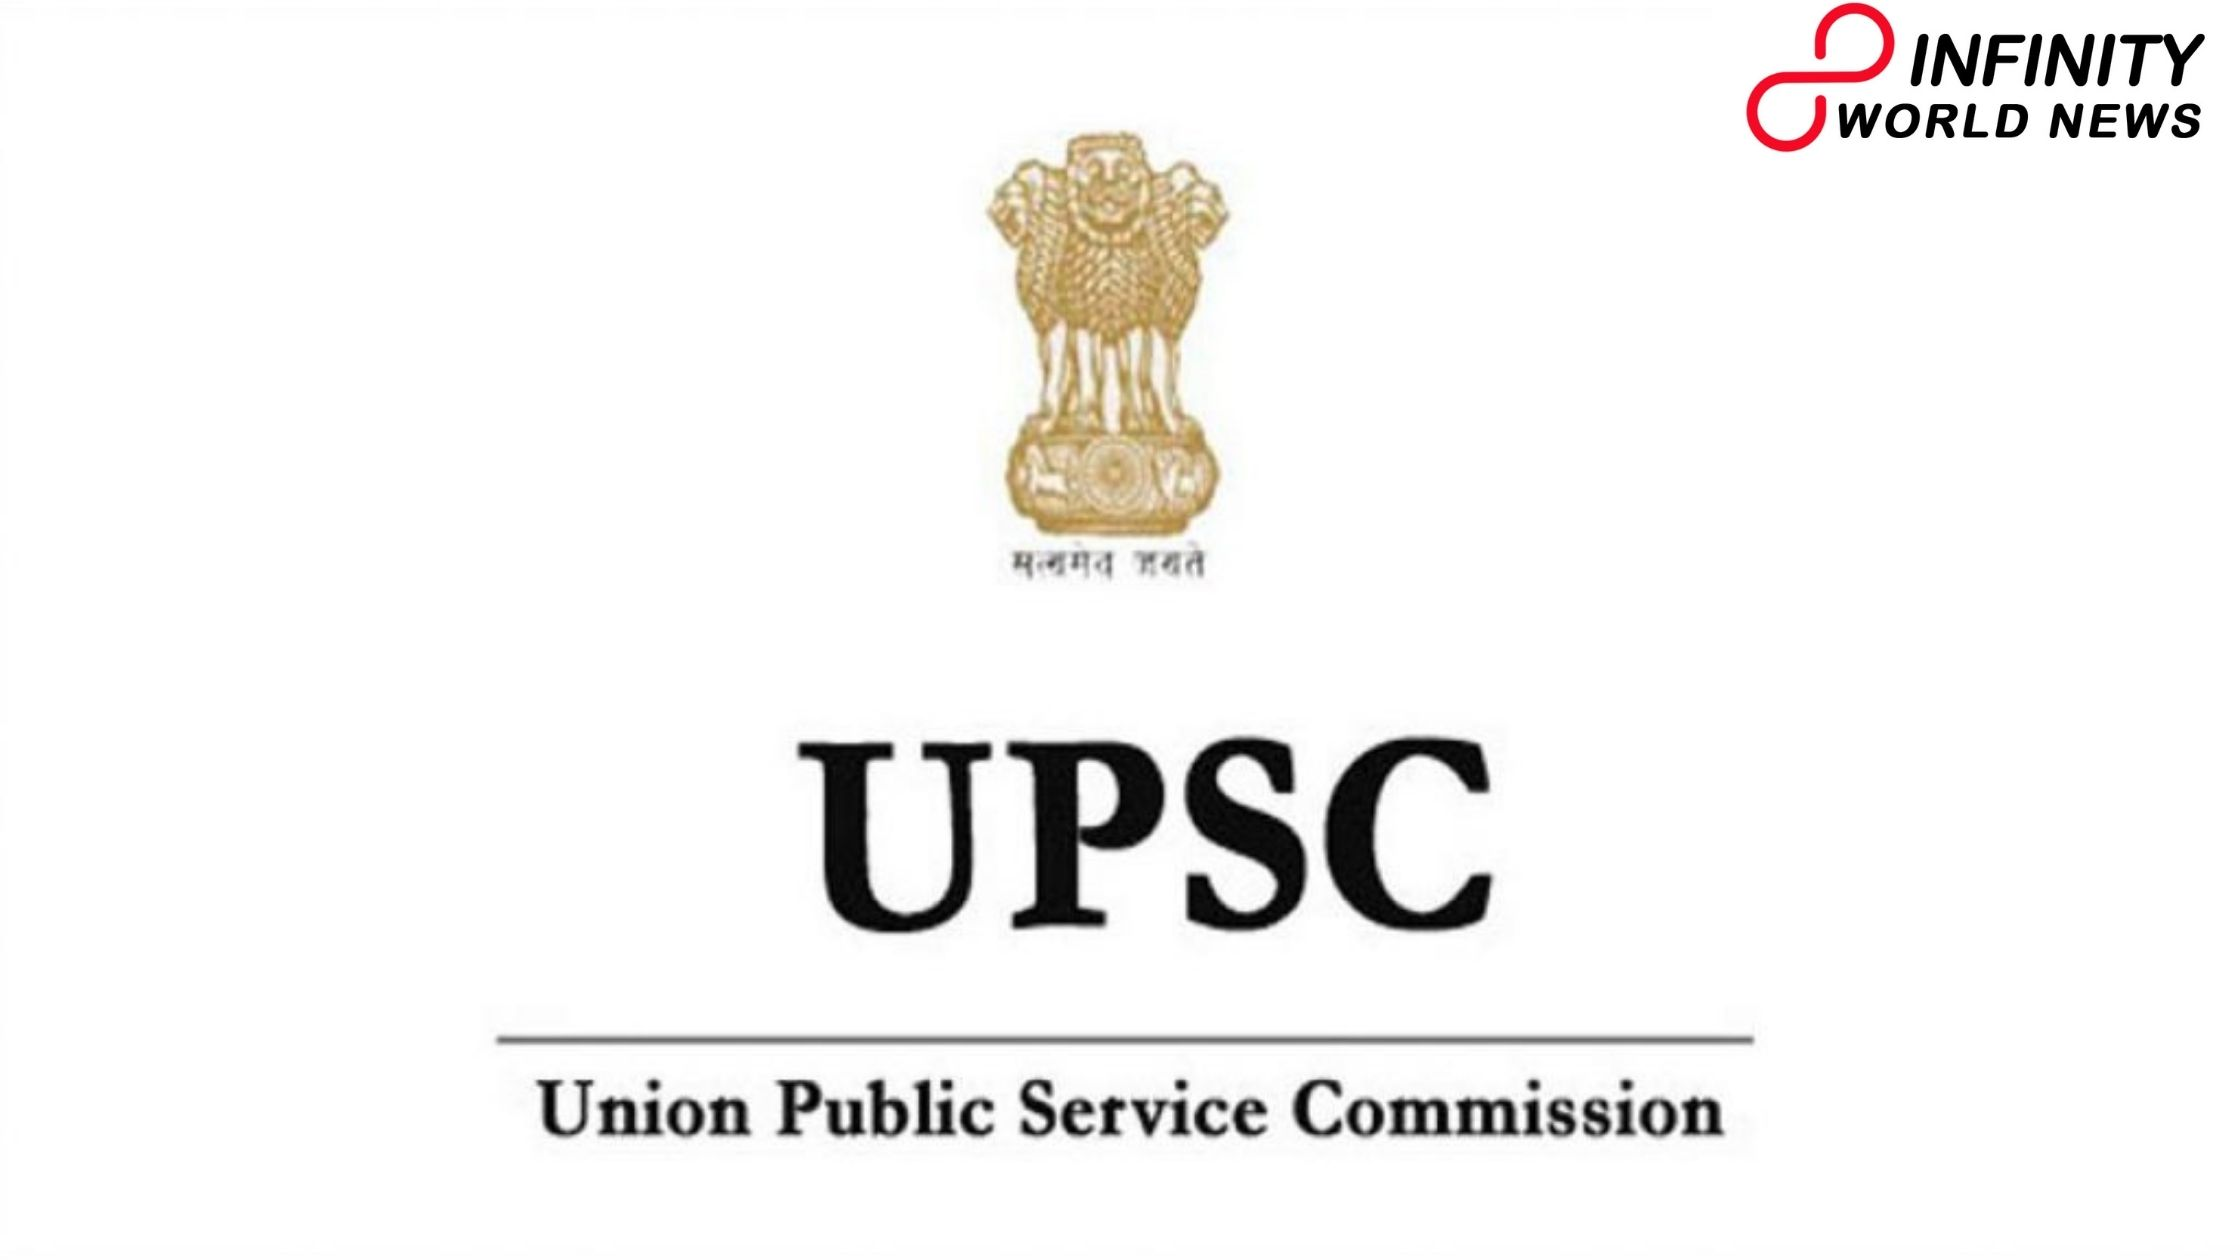 UPSC Recruitment Drive 2020: Applications welcomed for different posts in services, check how to apply